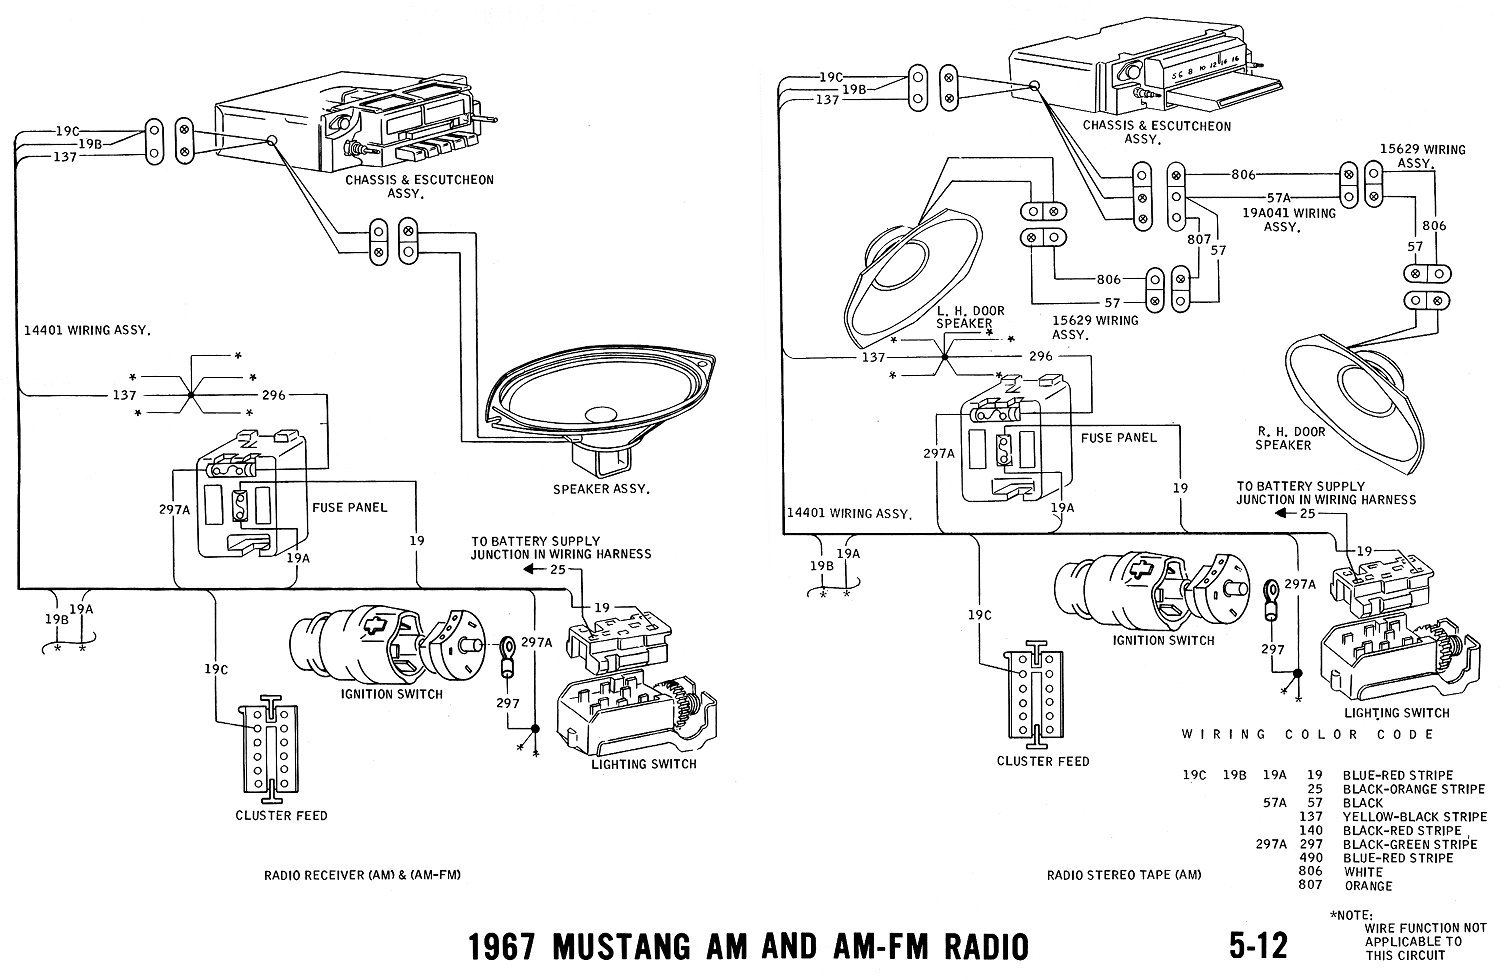 Wiring Diagram For 1967 Chevy C10, Wiring, Get Free Image